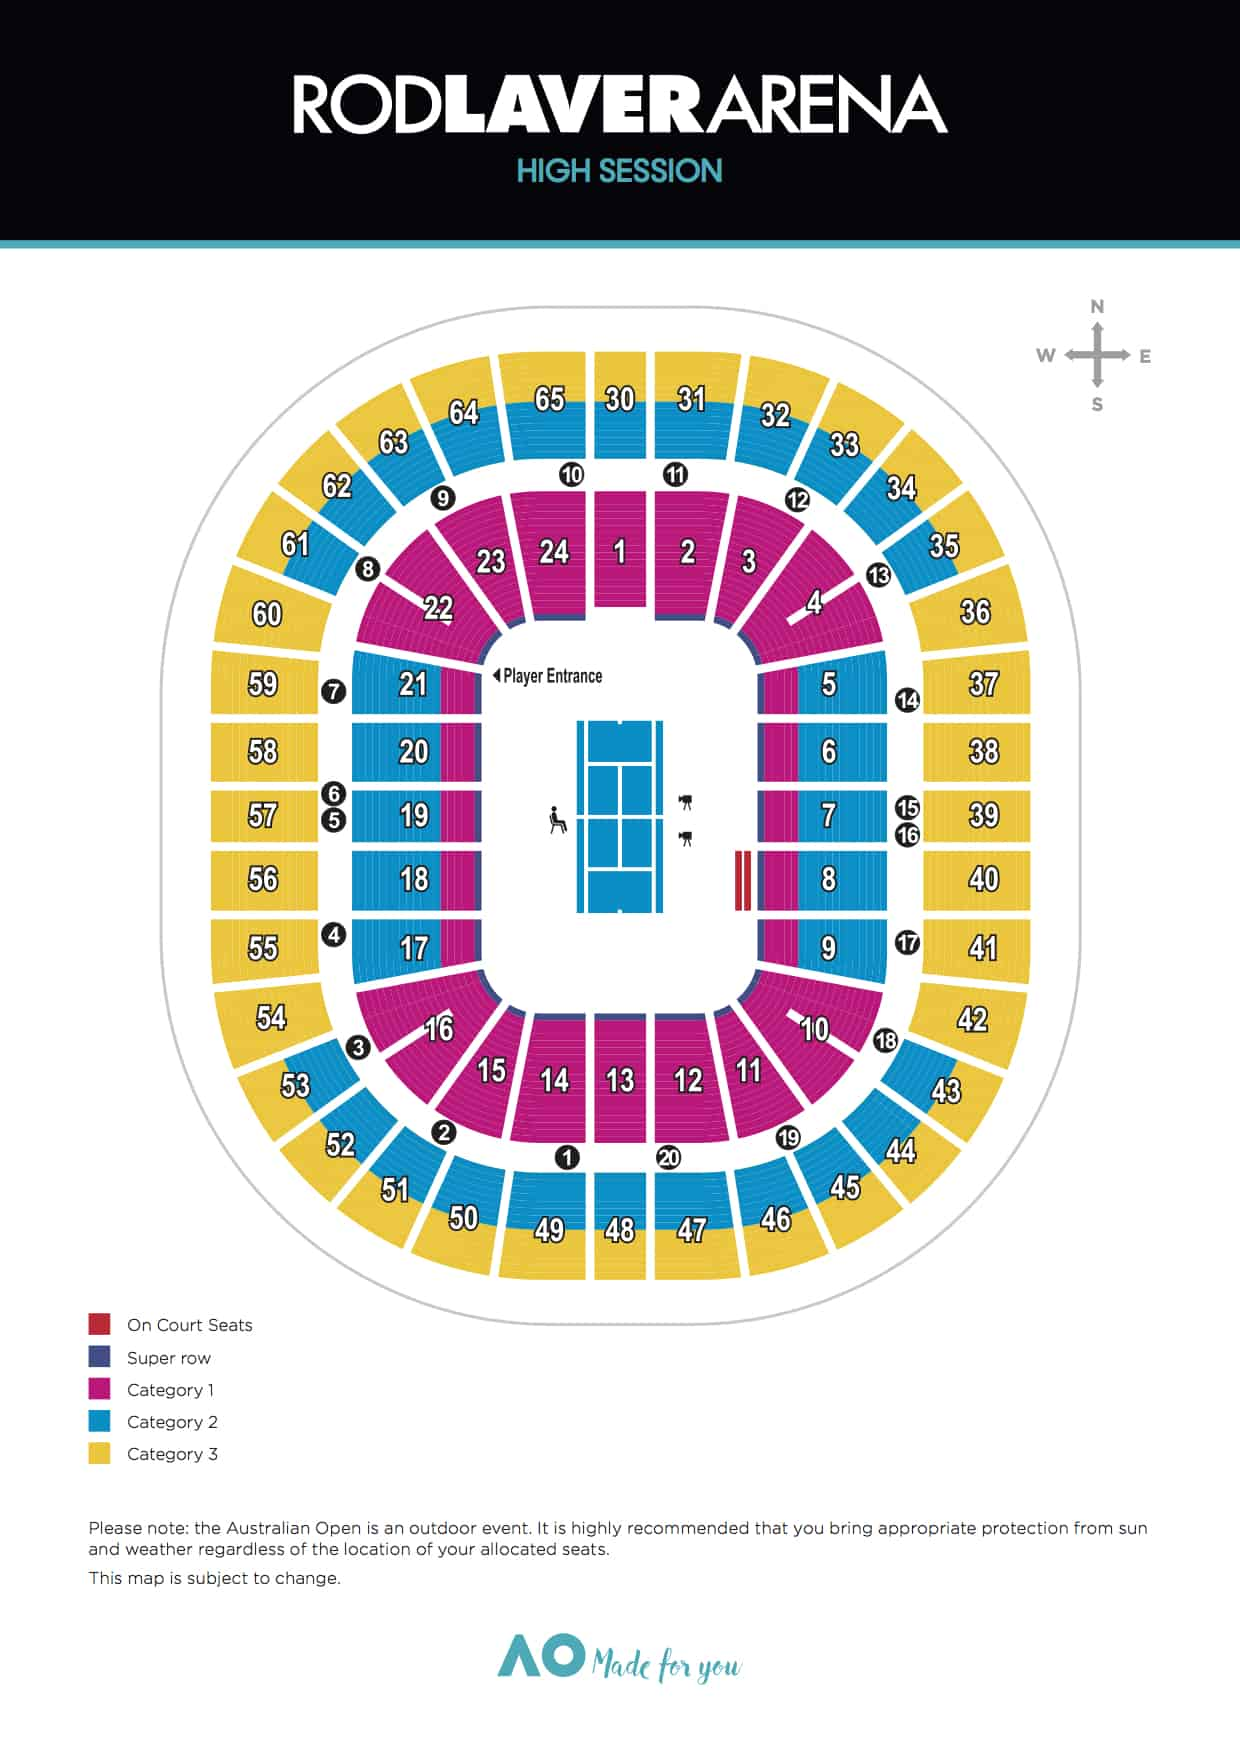 Rod laver arena seating rod laver arena floor plan - View Rod Laver Arena Fri Sun Sessions All Twilight Night Sessions Seating Map